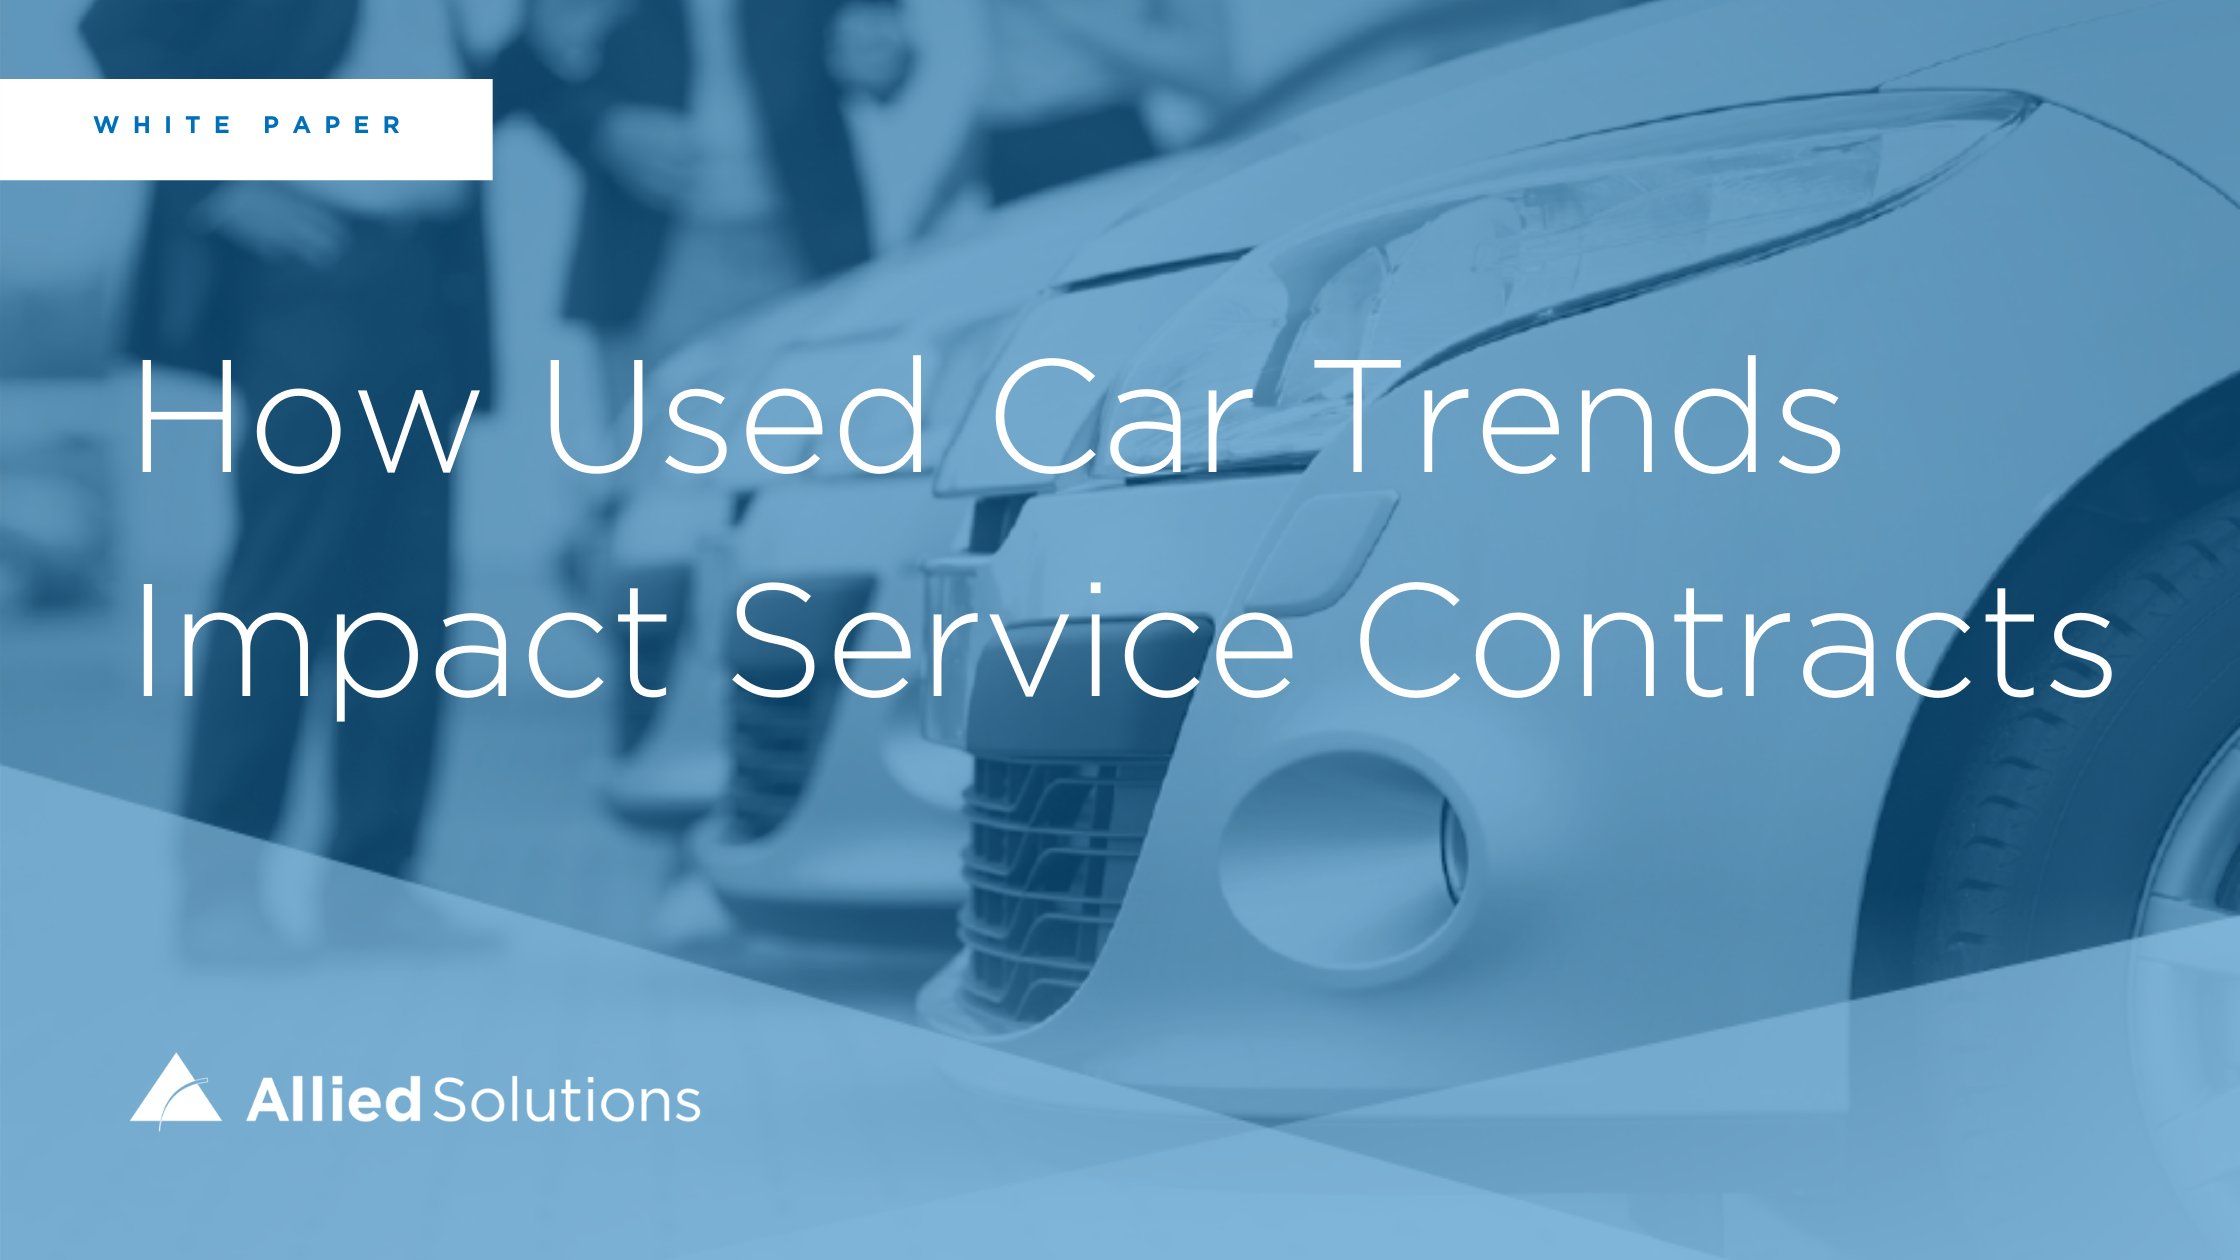 How Used Car Trends Impact Service Contracts